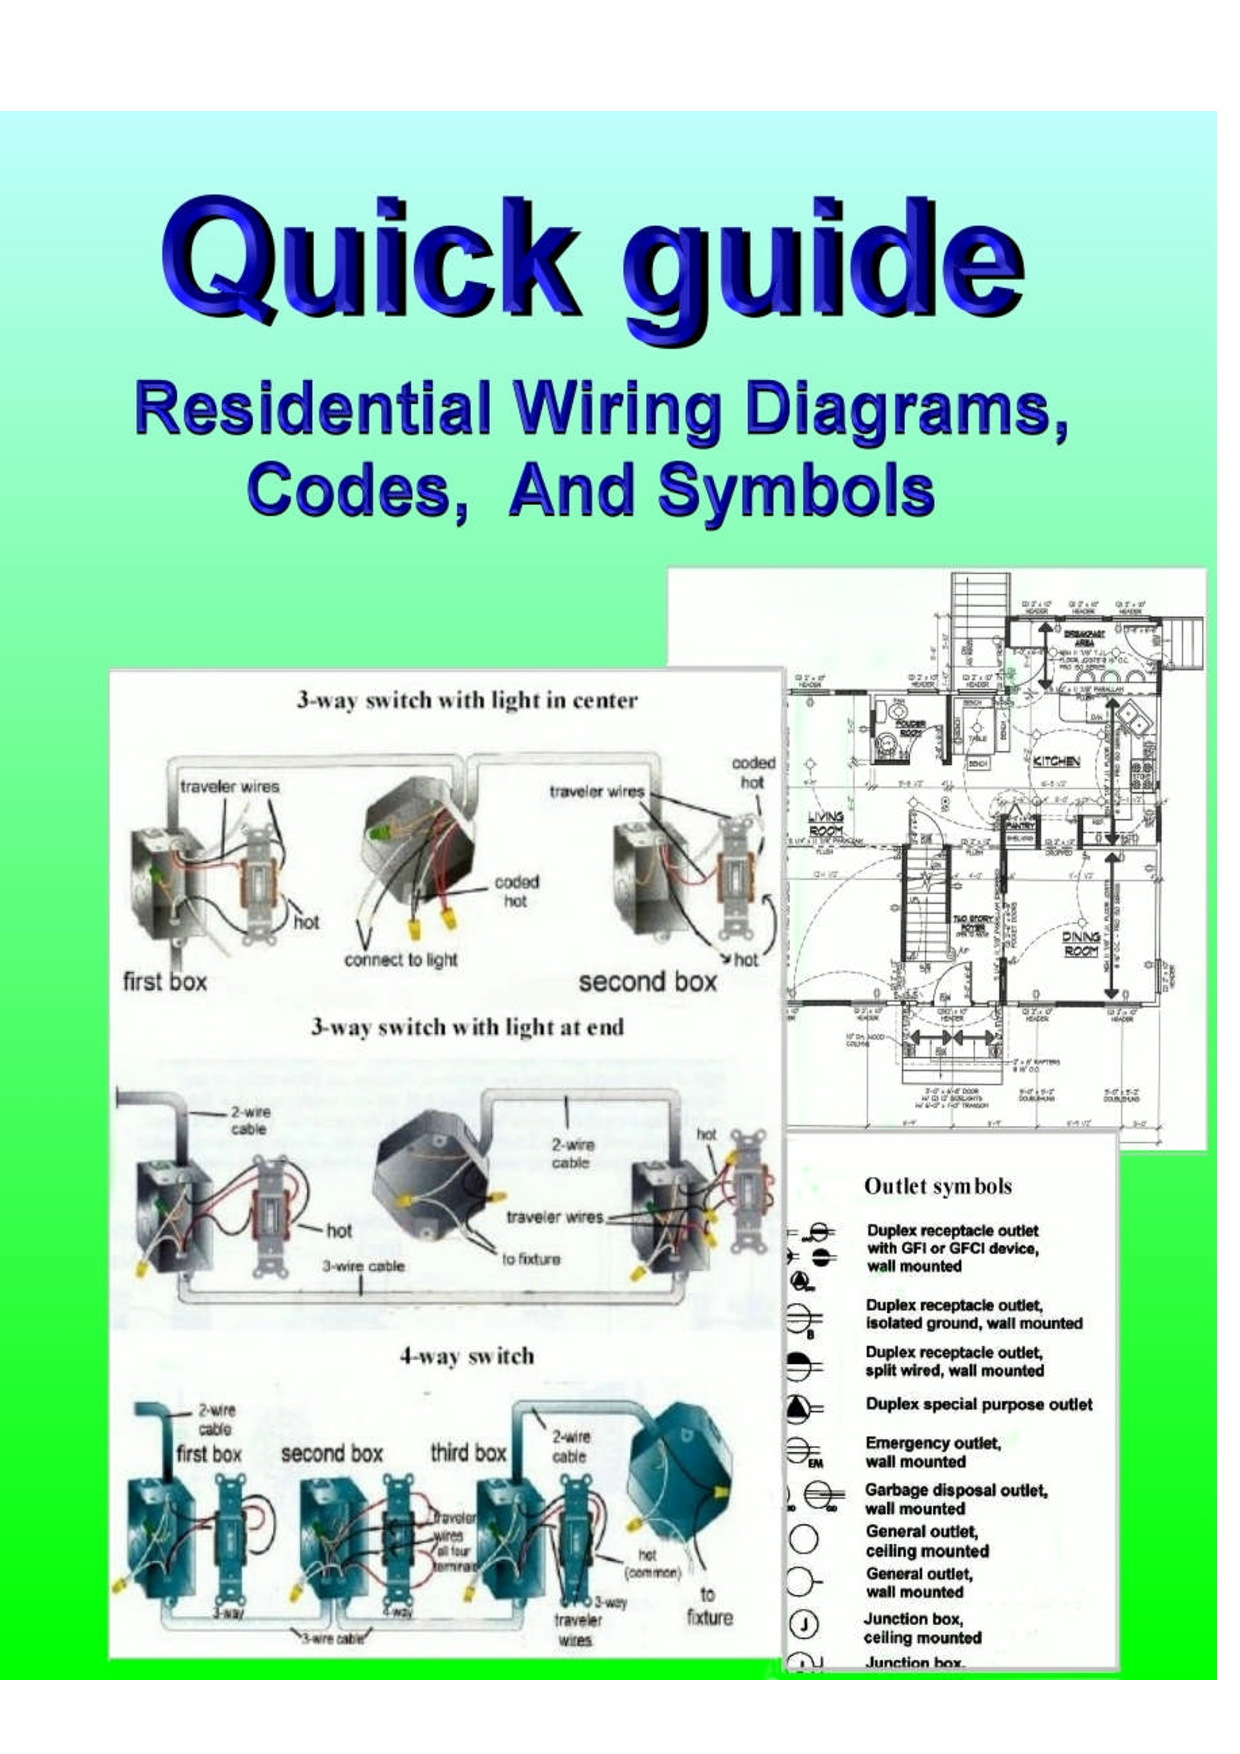 c3f403d8f667f3f3dbd14336f6c29d3e home electrical wiring diagrams pdf download legal documents 39 home electrical wiring diagrams pdf at cos-gaming.co